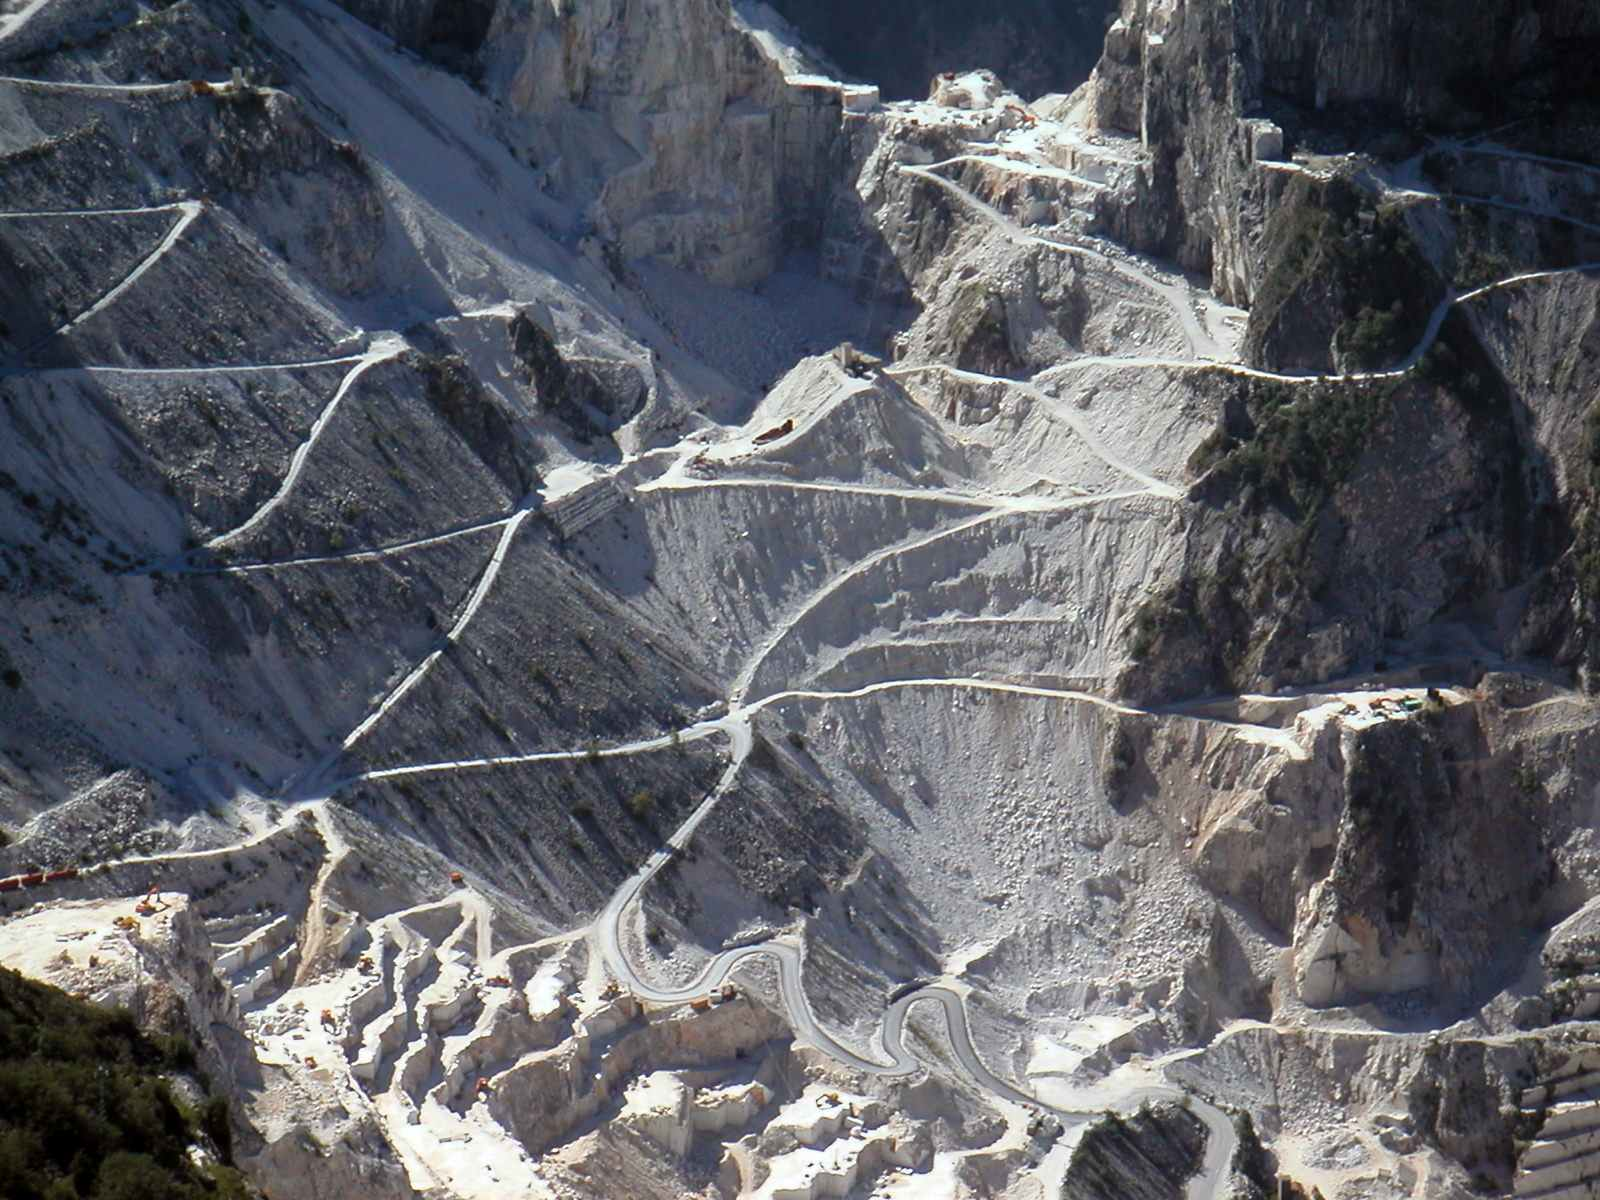 Carrara marble is famous all over the world